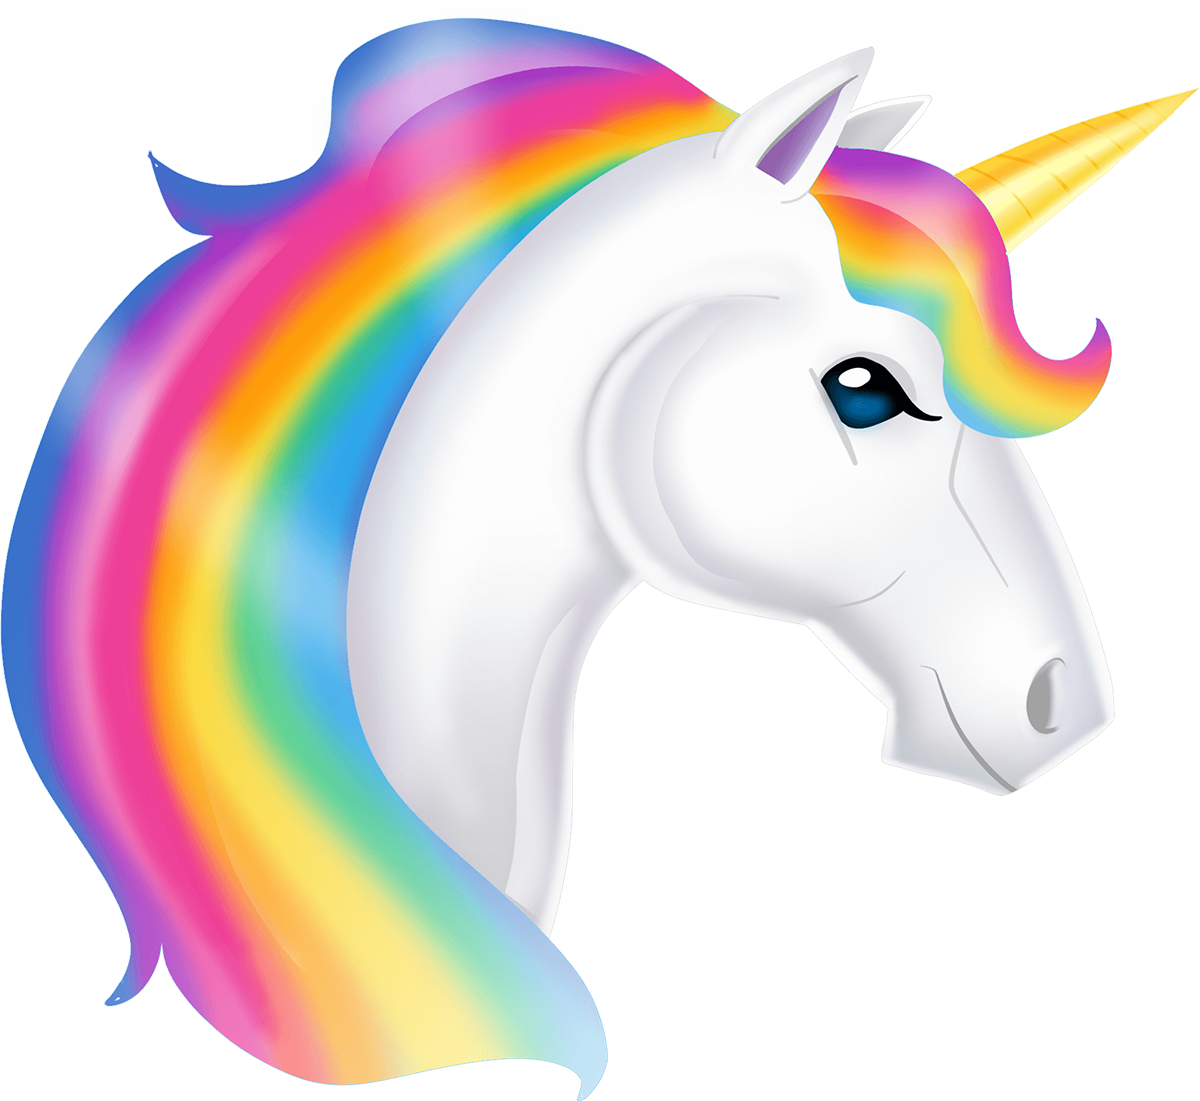 Pin by marina on. Donut clipart unicorn